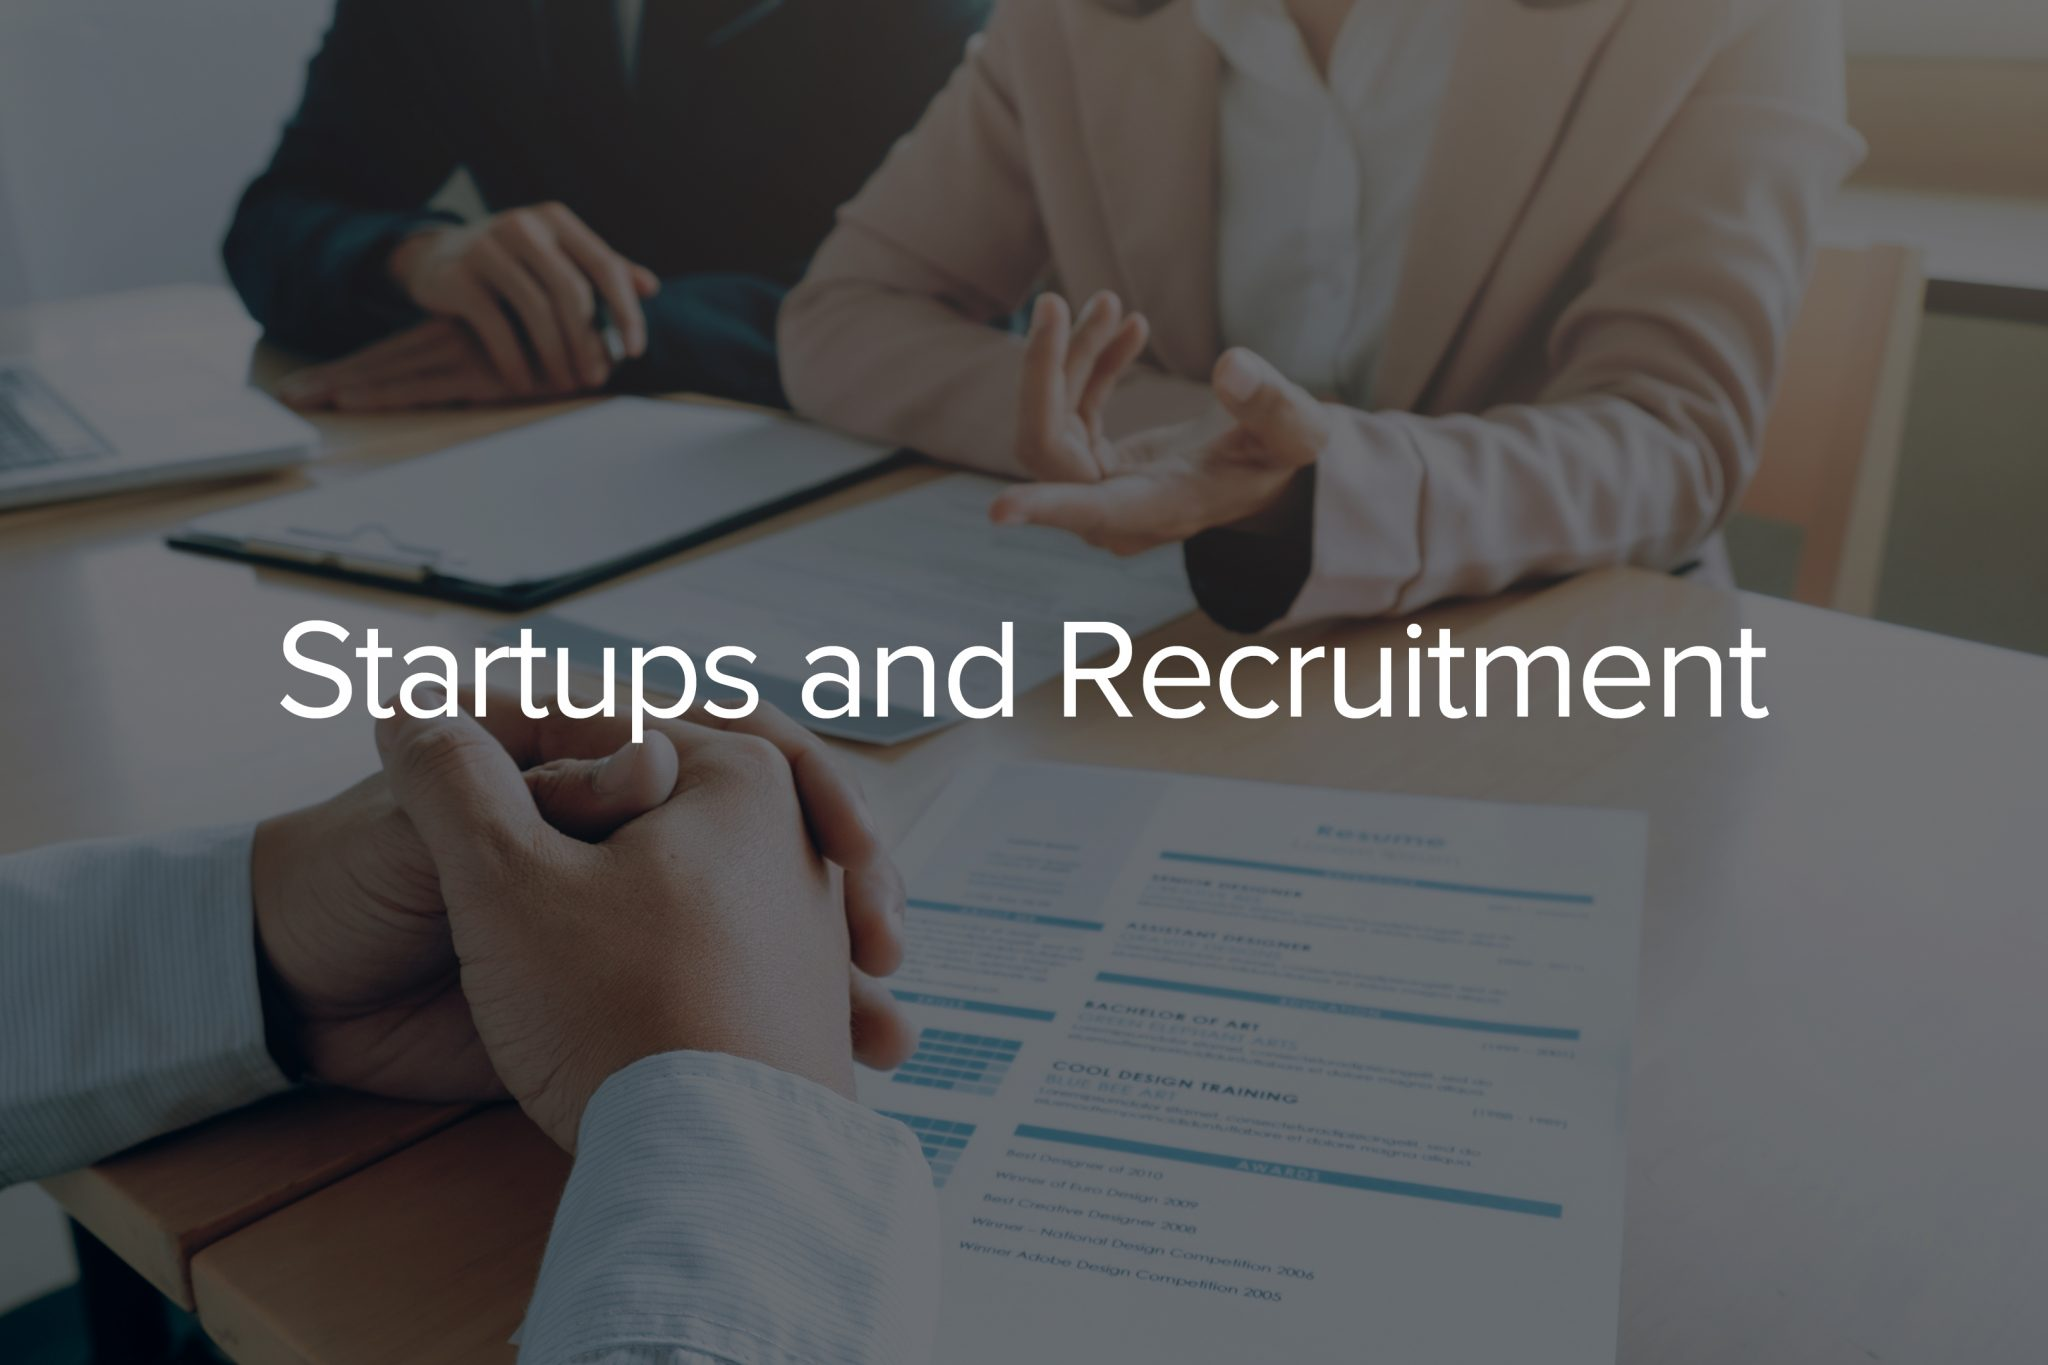 Why Recruitment process so Critical for Startups Success